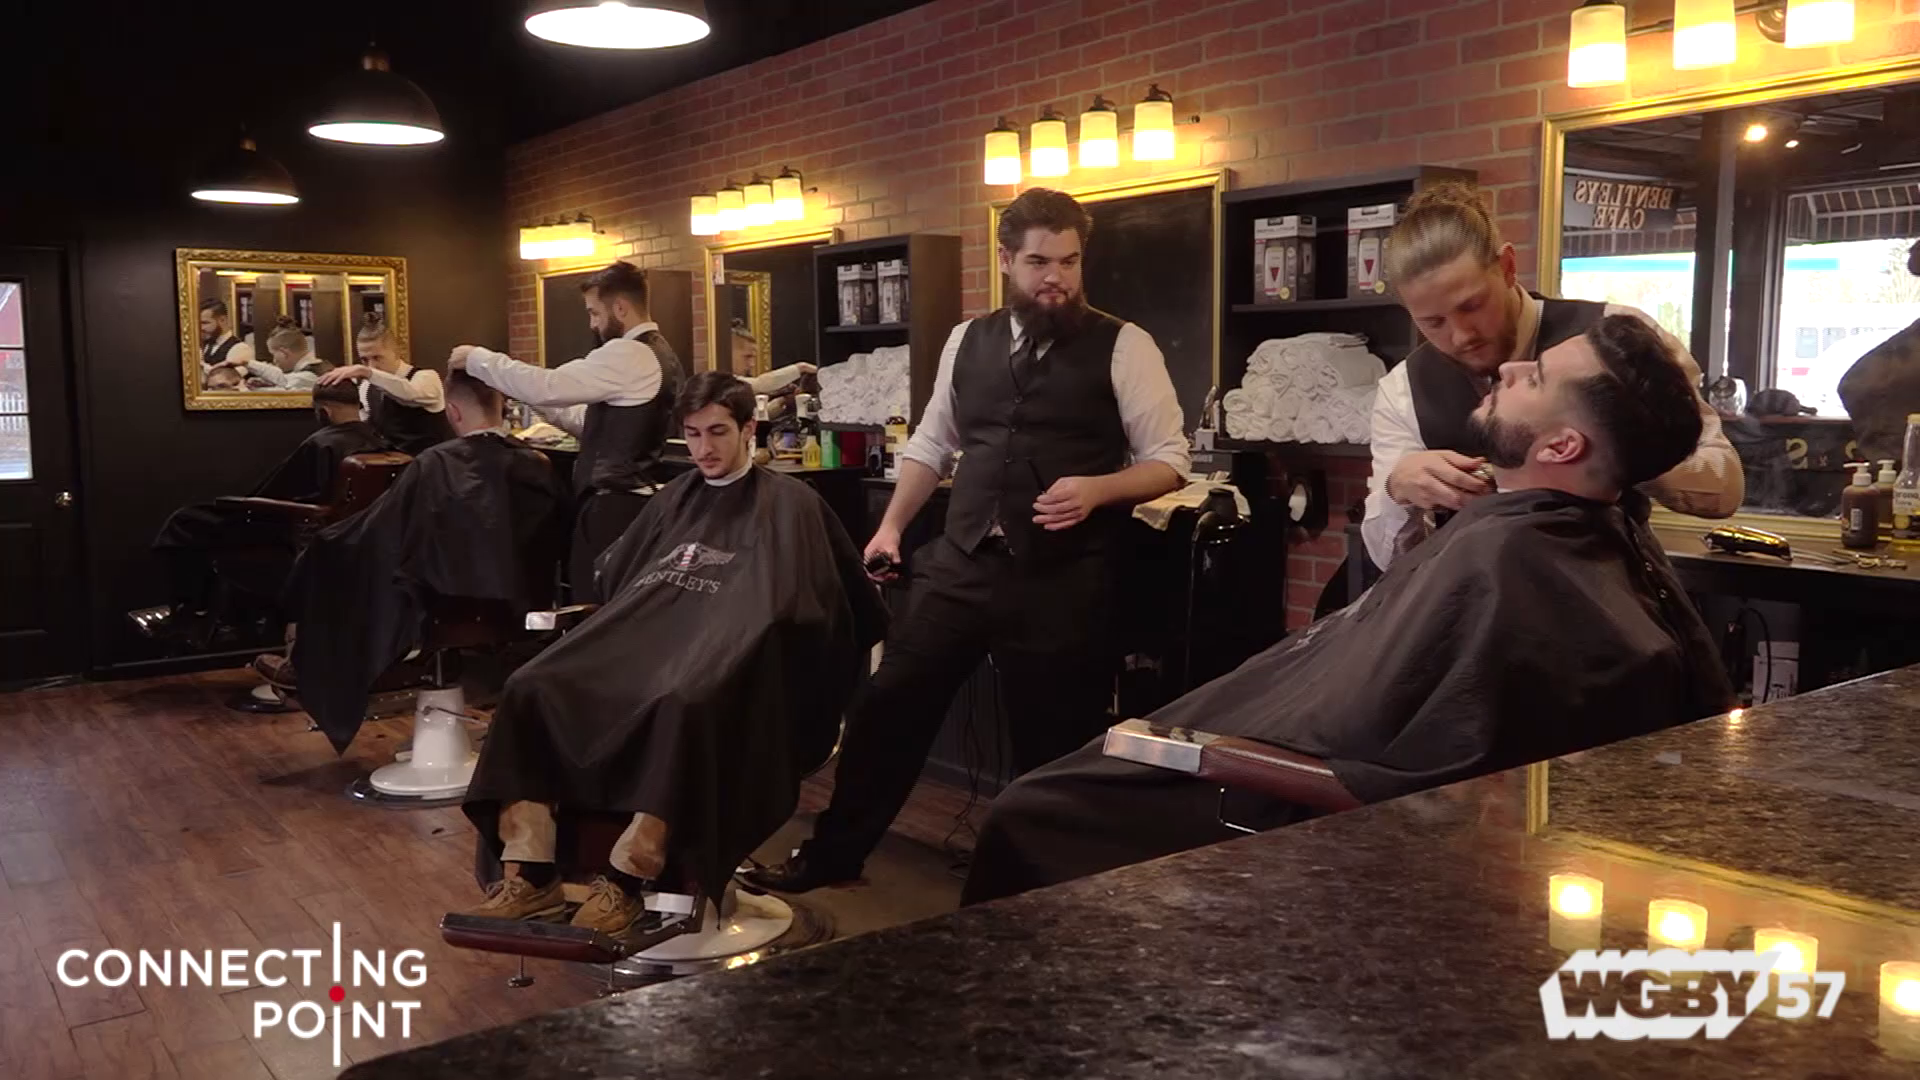 Bentley's Barbershop Serves Up Fresh Cuts in Springfield